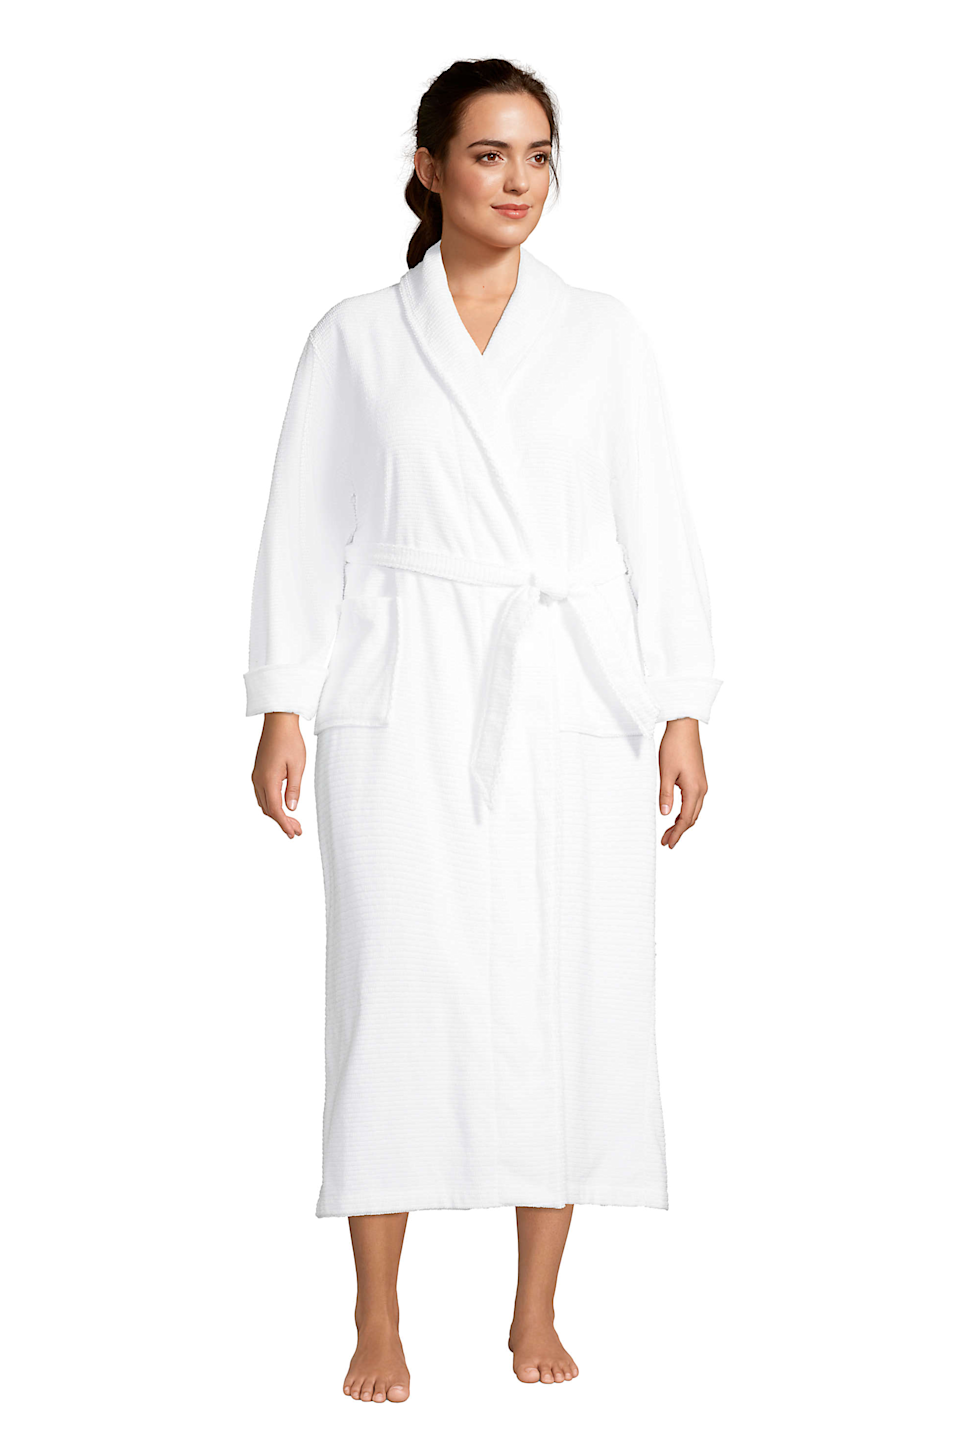 """<h2>Land's End Plus Size Supima Cotton Long Robe</h2><br>This crisp and classic extra long robe is made from super-soft Supima cotton and boasts nice big pockets for stashing your TV remote and extra snacks. <br><br><strong>Lands' End</strong> Plus Size Supima Cotton Long Robe, $, available at <a href=""""https://go.skimresources.com/?id=30283X879131&url=https%3A%2F%2Fwww.landsend.com%2Fproducts%2Fwomens-plus-size-supima-cotton-long-robe%2Fid_346728"""" rel=""""nofollow noopener"""" target=""""_blank"""" data-ylk=""""slk:Land's End"""" class=""""link rapid-noclick-resp"""">Land's End</a>"""